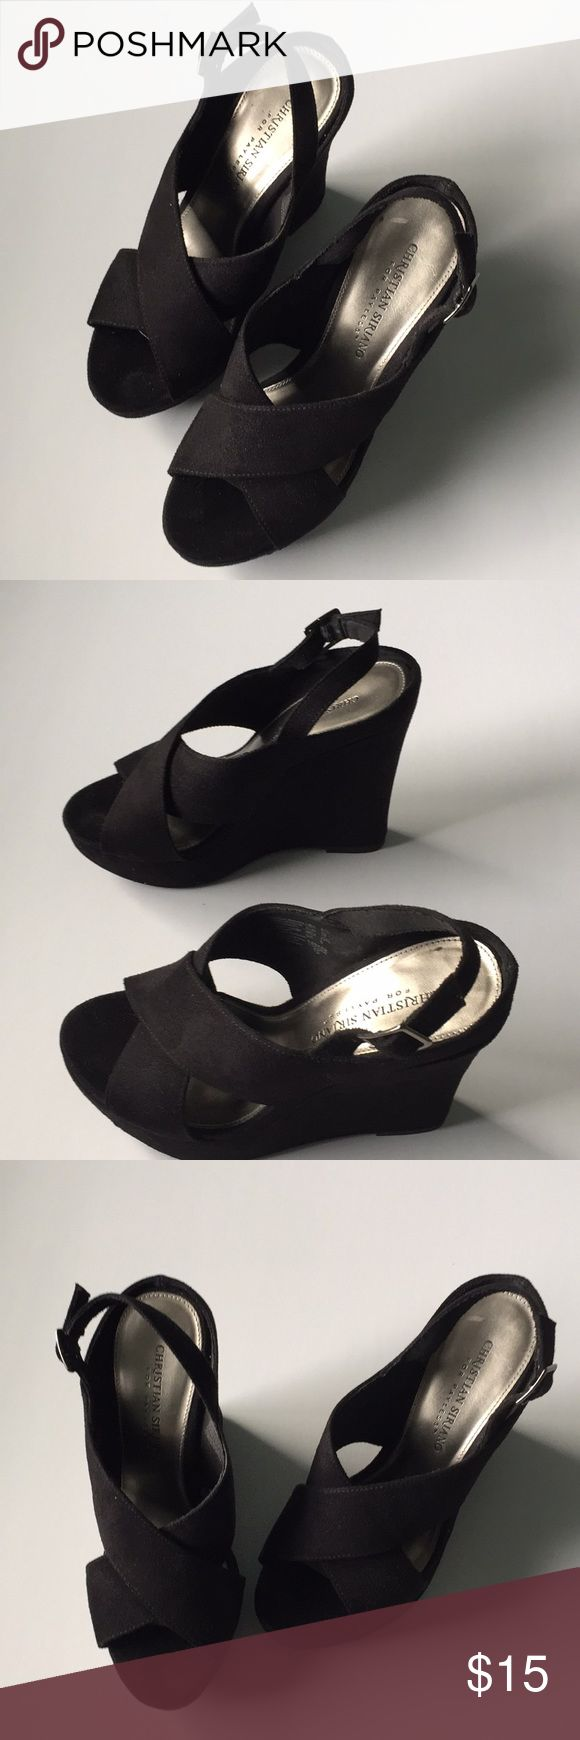 """Christian Siriano  black wedges open toe sz 6.5 Christian Siriano for payless black platform wedges open toe size 6.5. Black suede. Sexy.  5"""" inch heel.   Size 6.5 usa,  euro is 38  Used once in a party  Item loc posh 1 Shoes Wedges"""